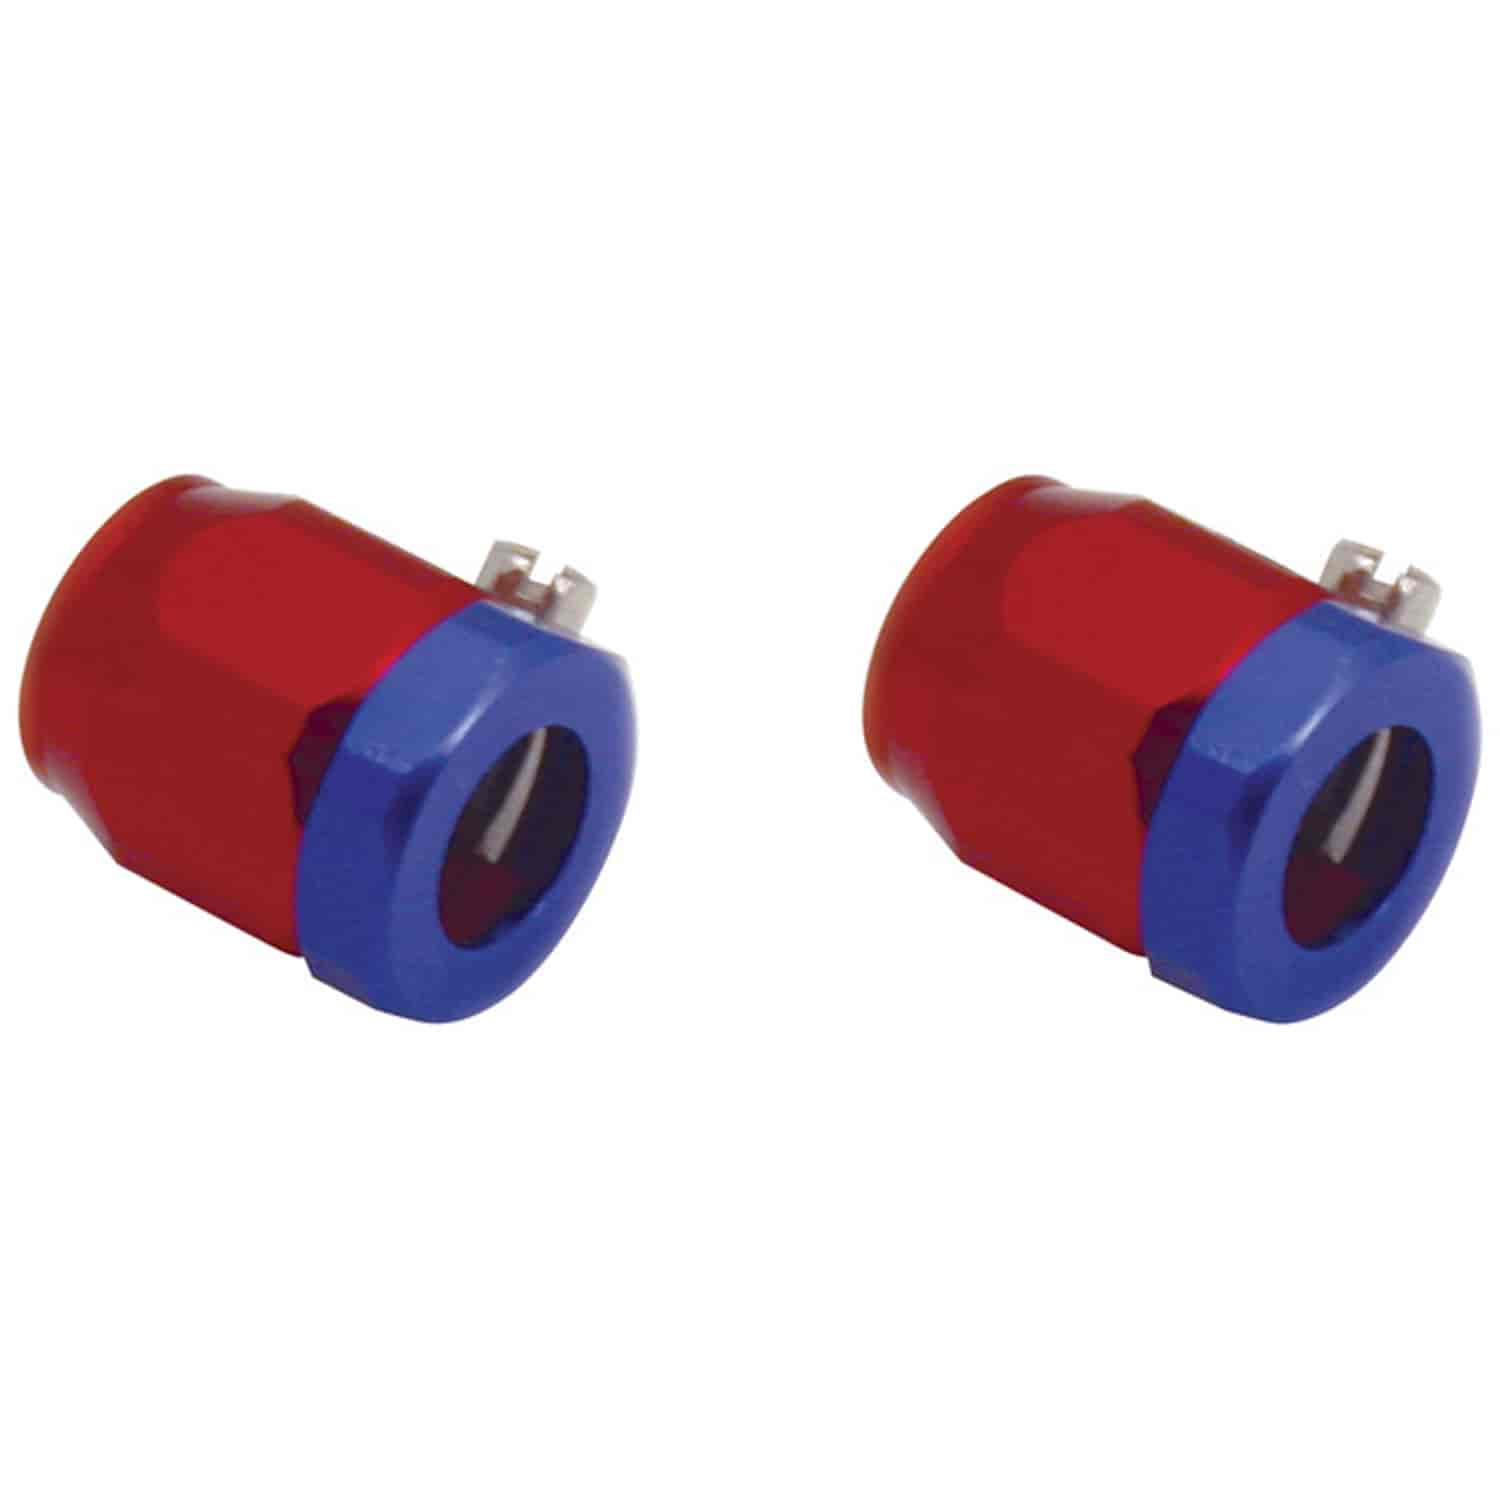 Spectre 2260 - Spectre Magna-Clamp Hose Fittings